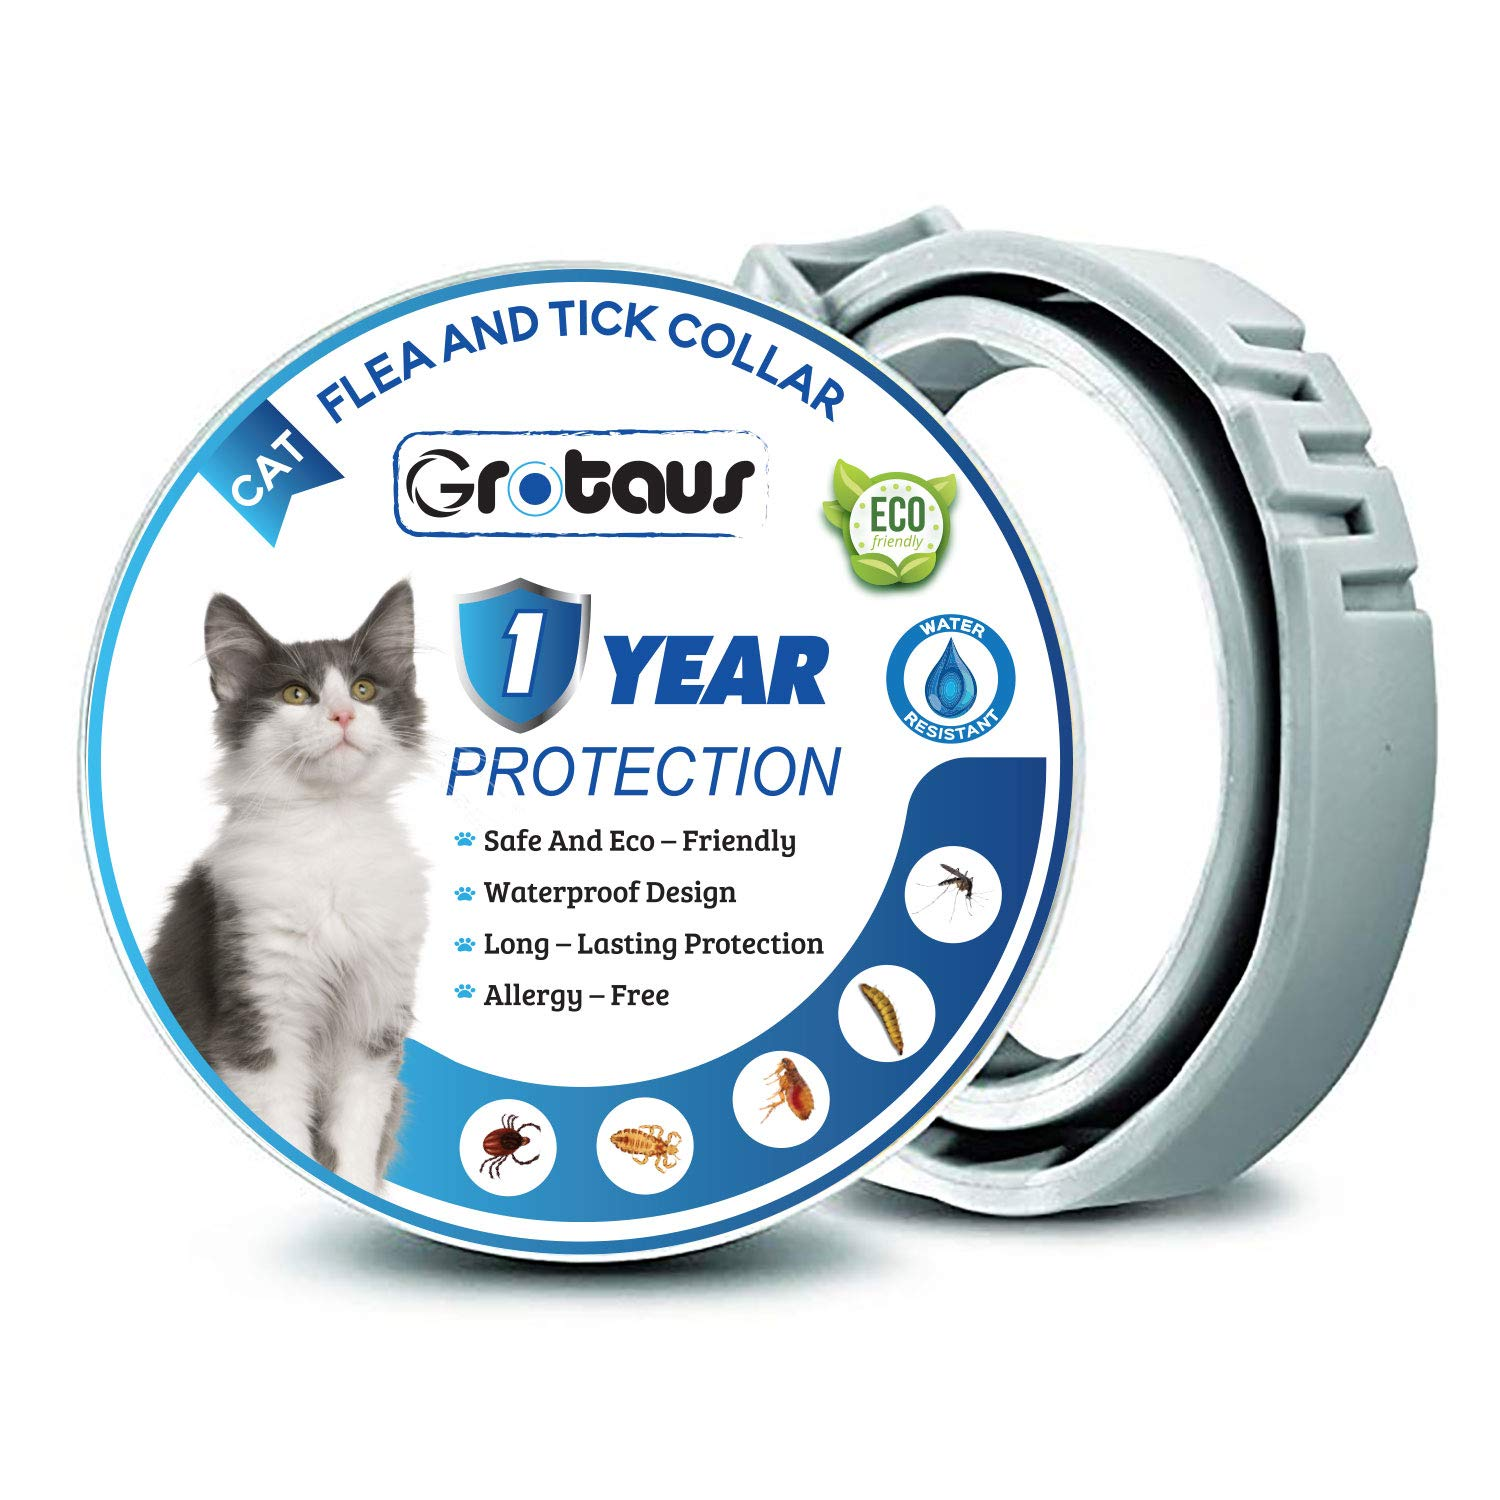 GROTAUS Flea and Tick Collar for Cats - Effective for All Sized Cats - 12 Months Flea and Tick Collar Prevention - Waterproof Flea and Tick Control Collar - 100% Natural Treatment